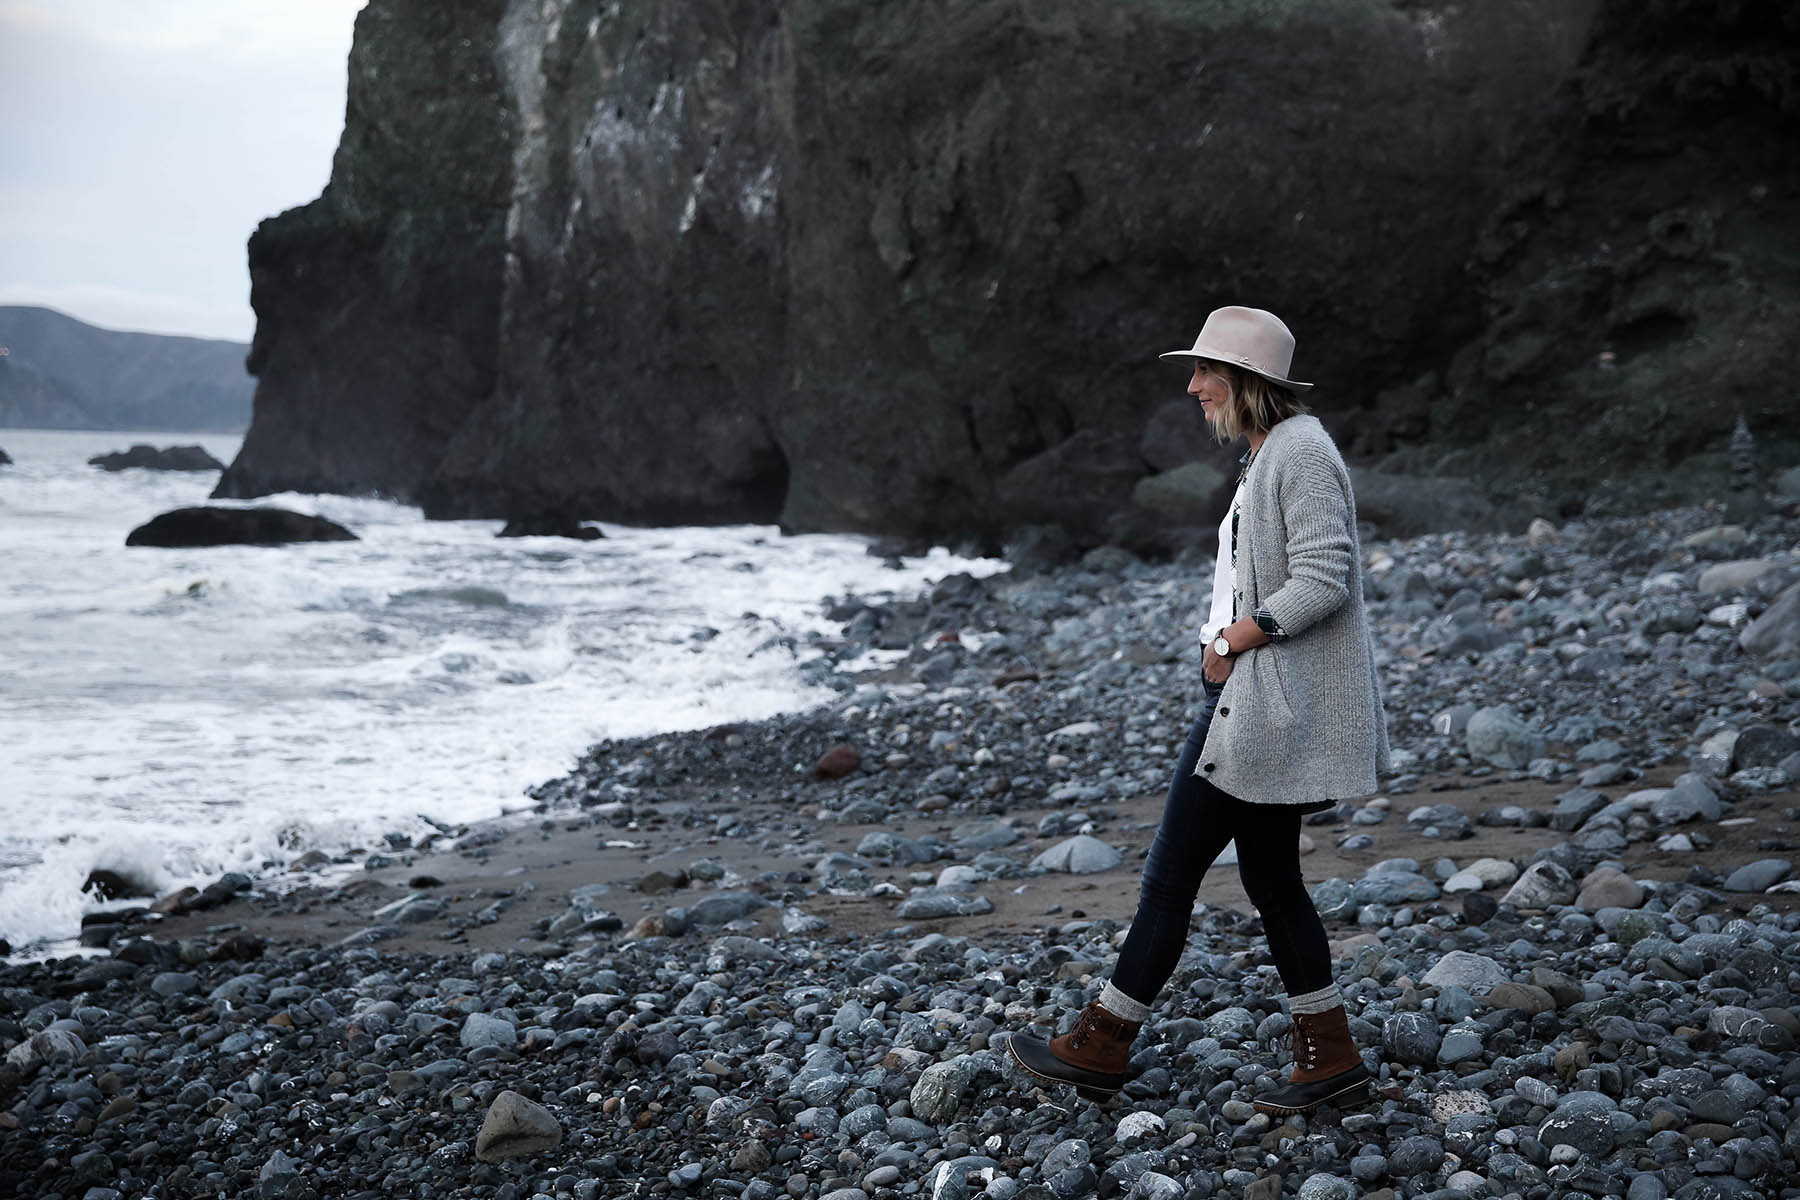 san francisco hikes on beach in sorel boots and grey cardigan